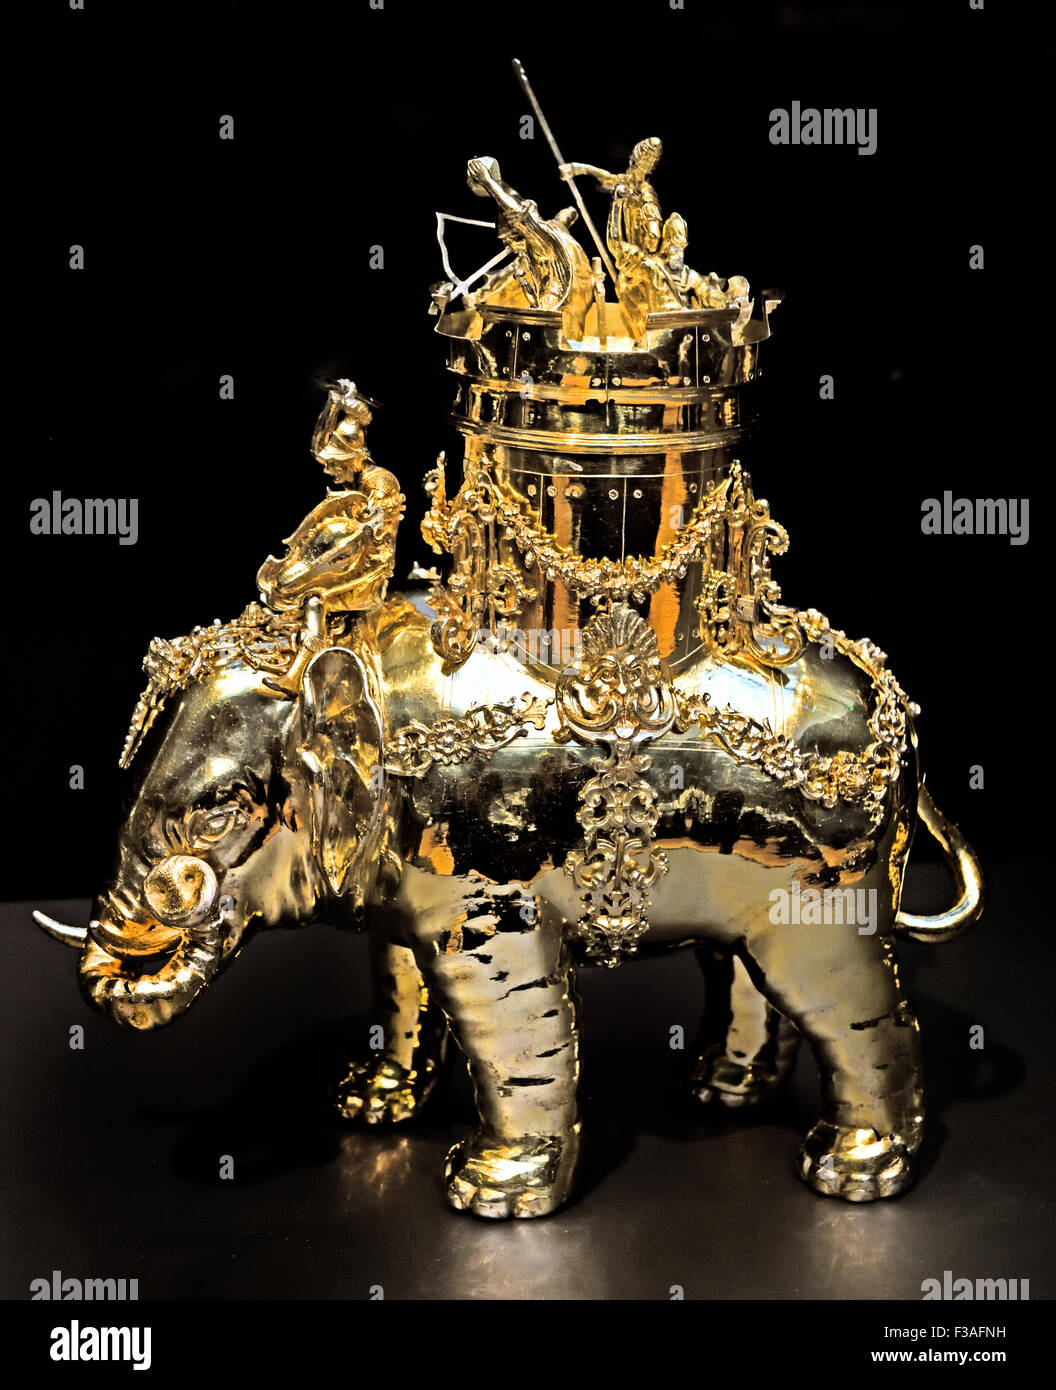 Jug in the shape of a war elephant, Wolff 1615 Christof Ritter 1648 - 1616 Neurenberg German Germany ( This object - Stock Image